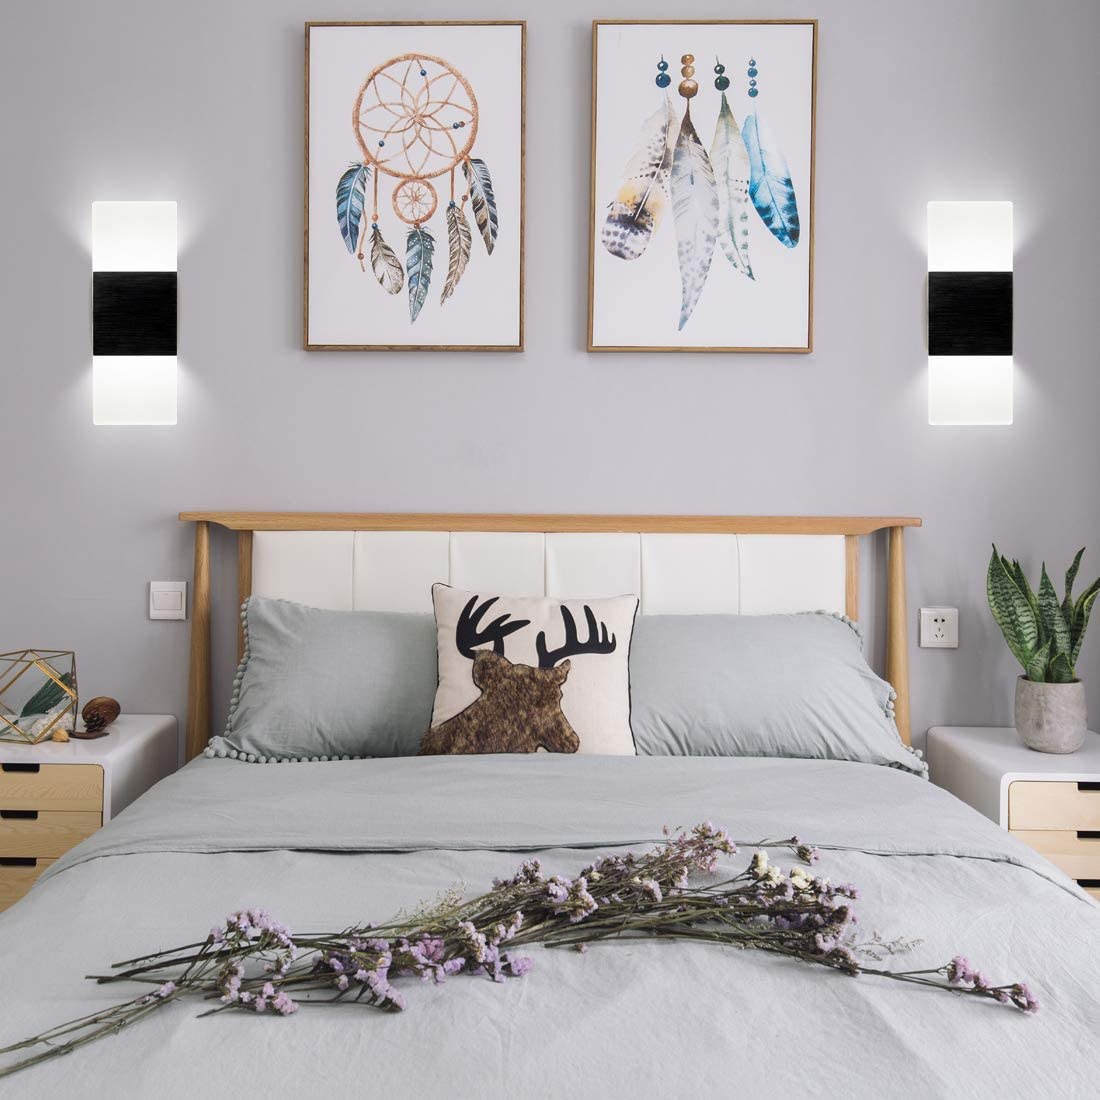 LED Wall Light Wall Sconce Plug in Cord with on/Off Switch ...